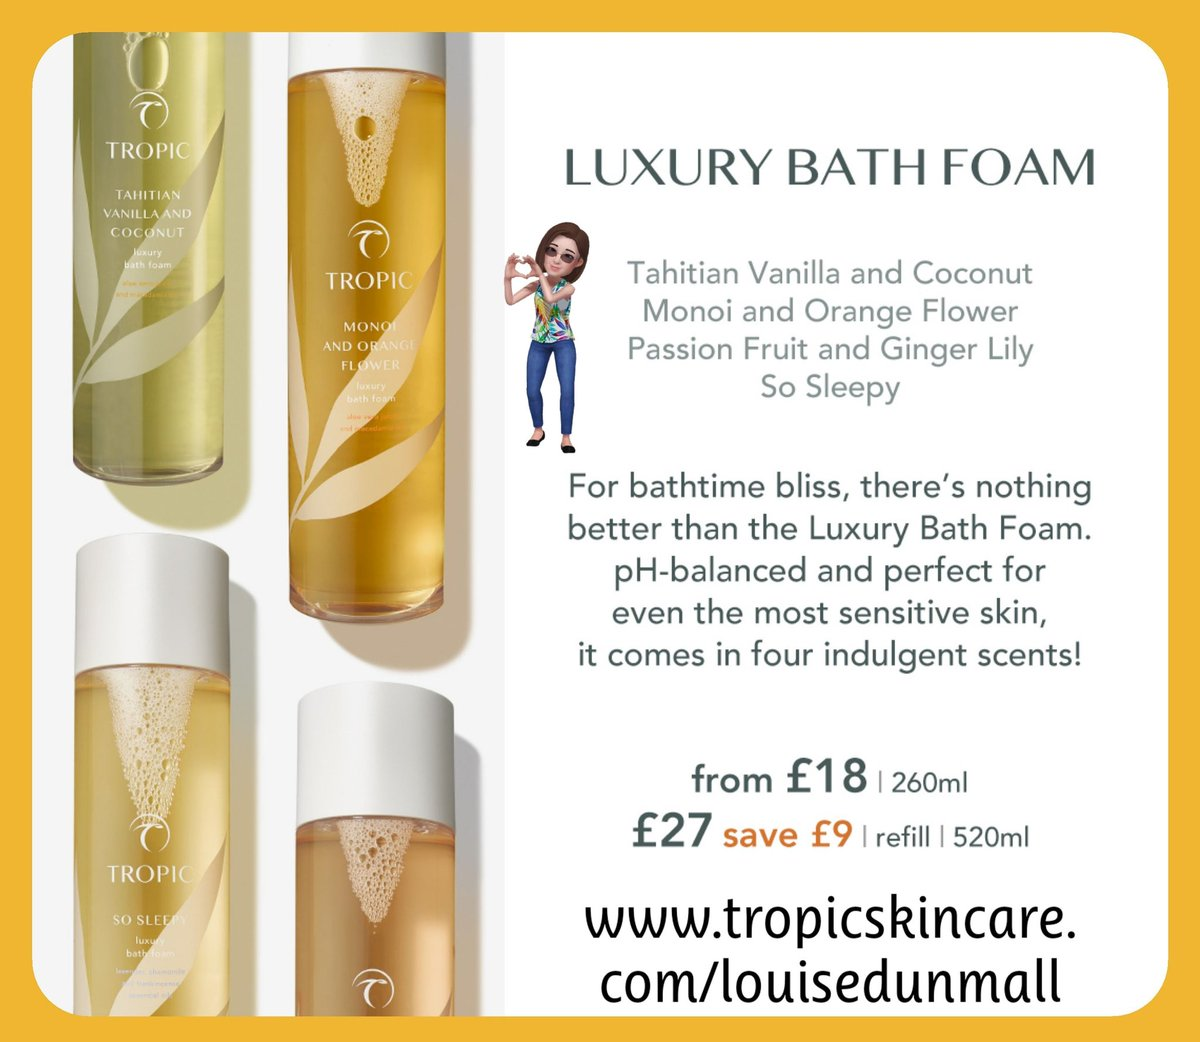 NEW PRODUCT ALERT!!!  NEW FULL SIZED LUXURY BATH FOAMS  https://t.co/7SYGTpQQIs https://t.co/DR69QFP8I2